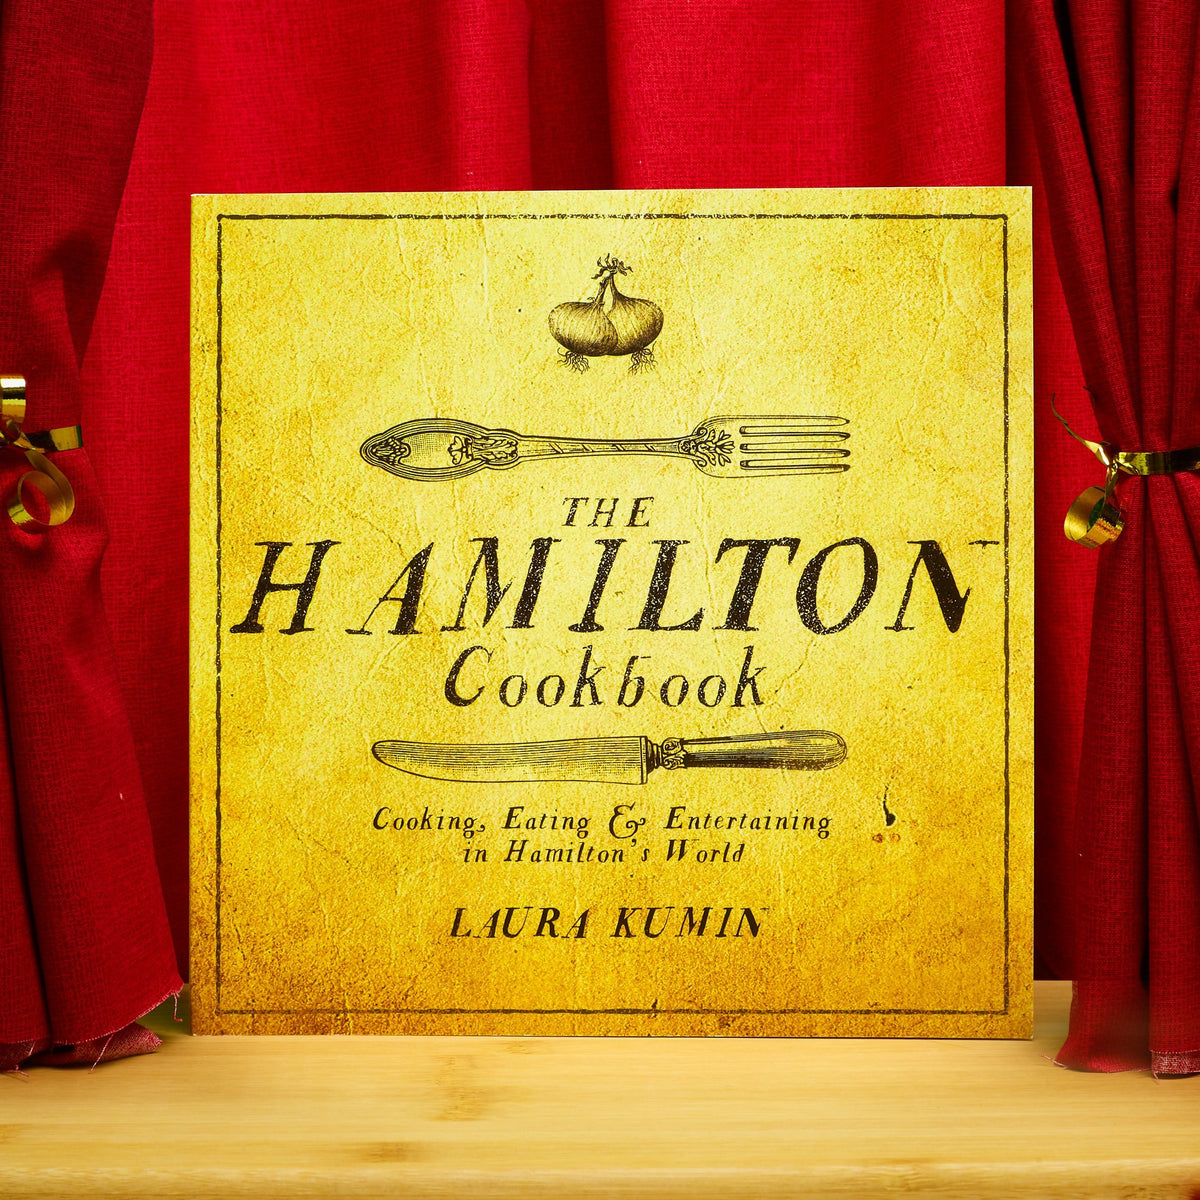 The Hamilton Cookbook - Cooking, Eating, and Entertaining in Hamilton's World